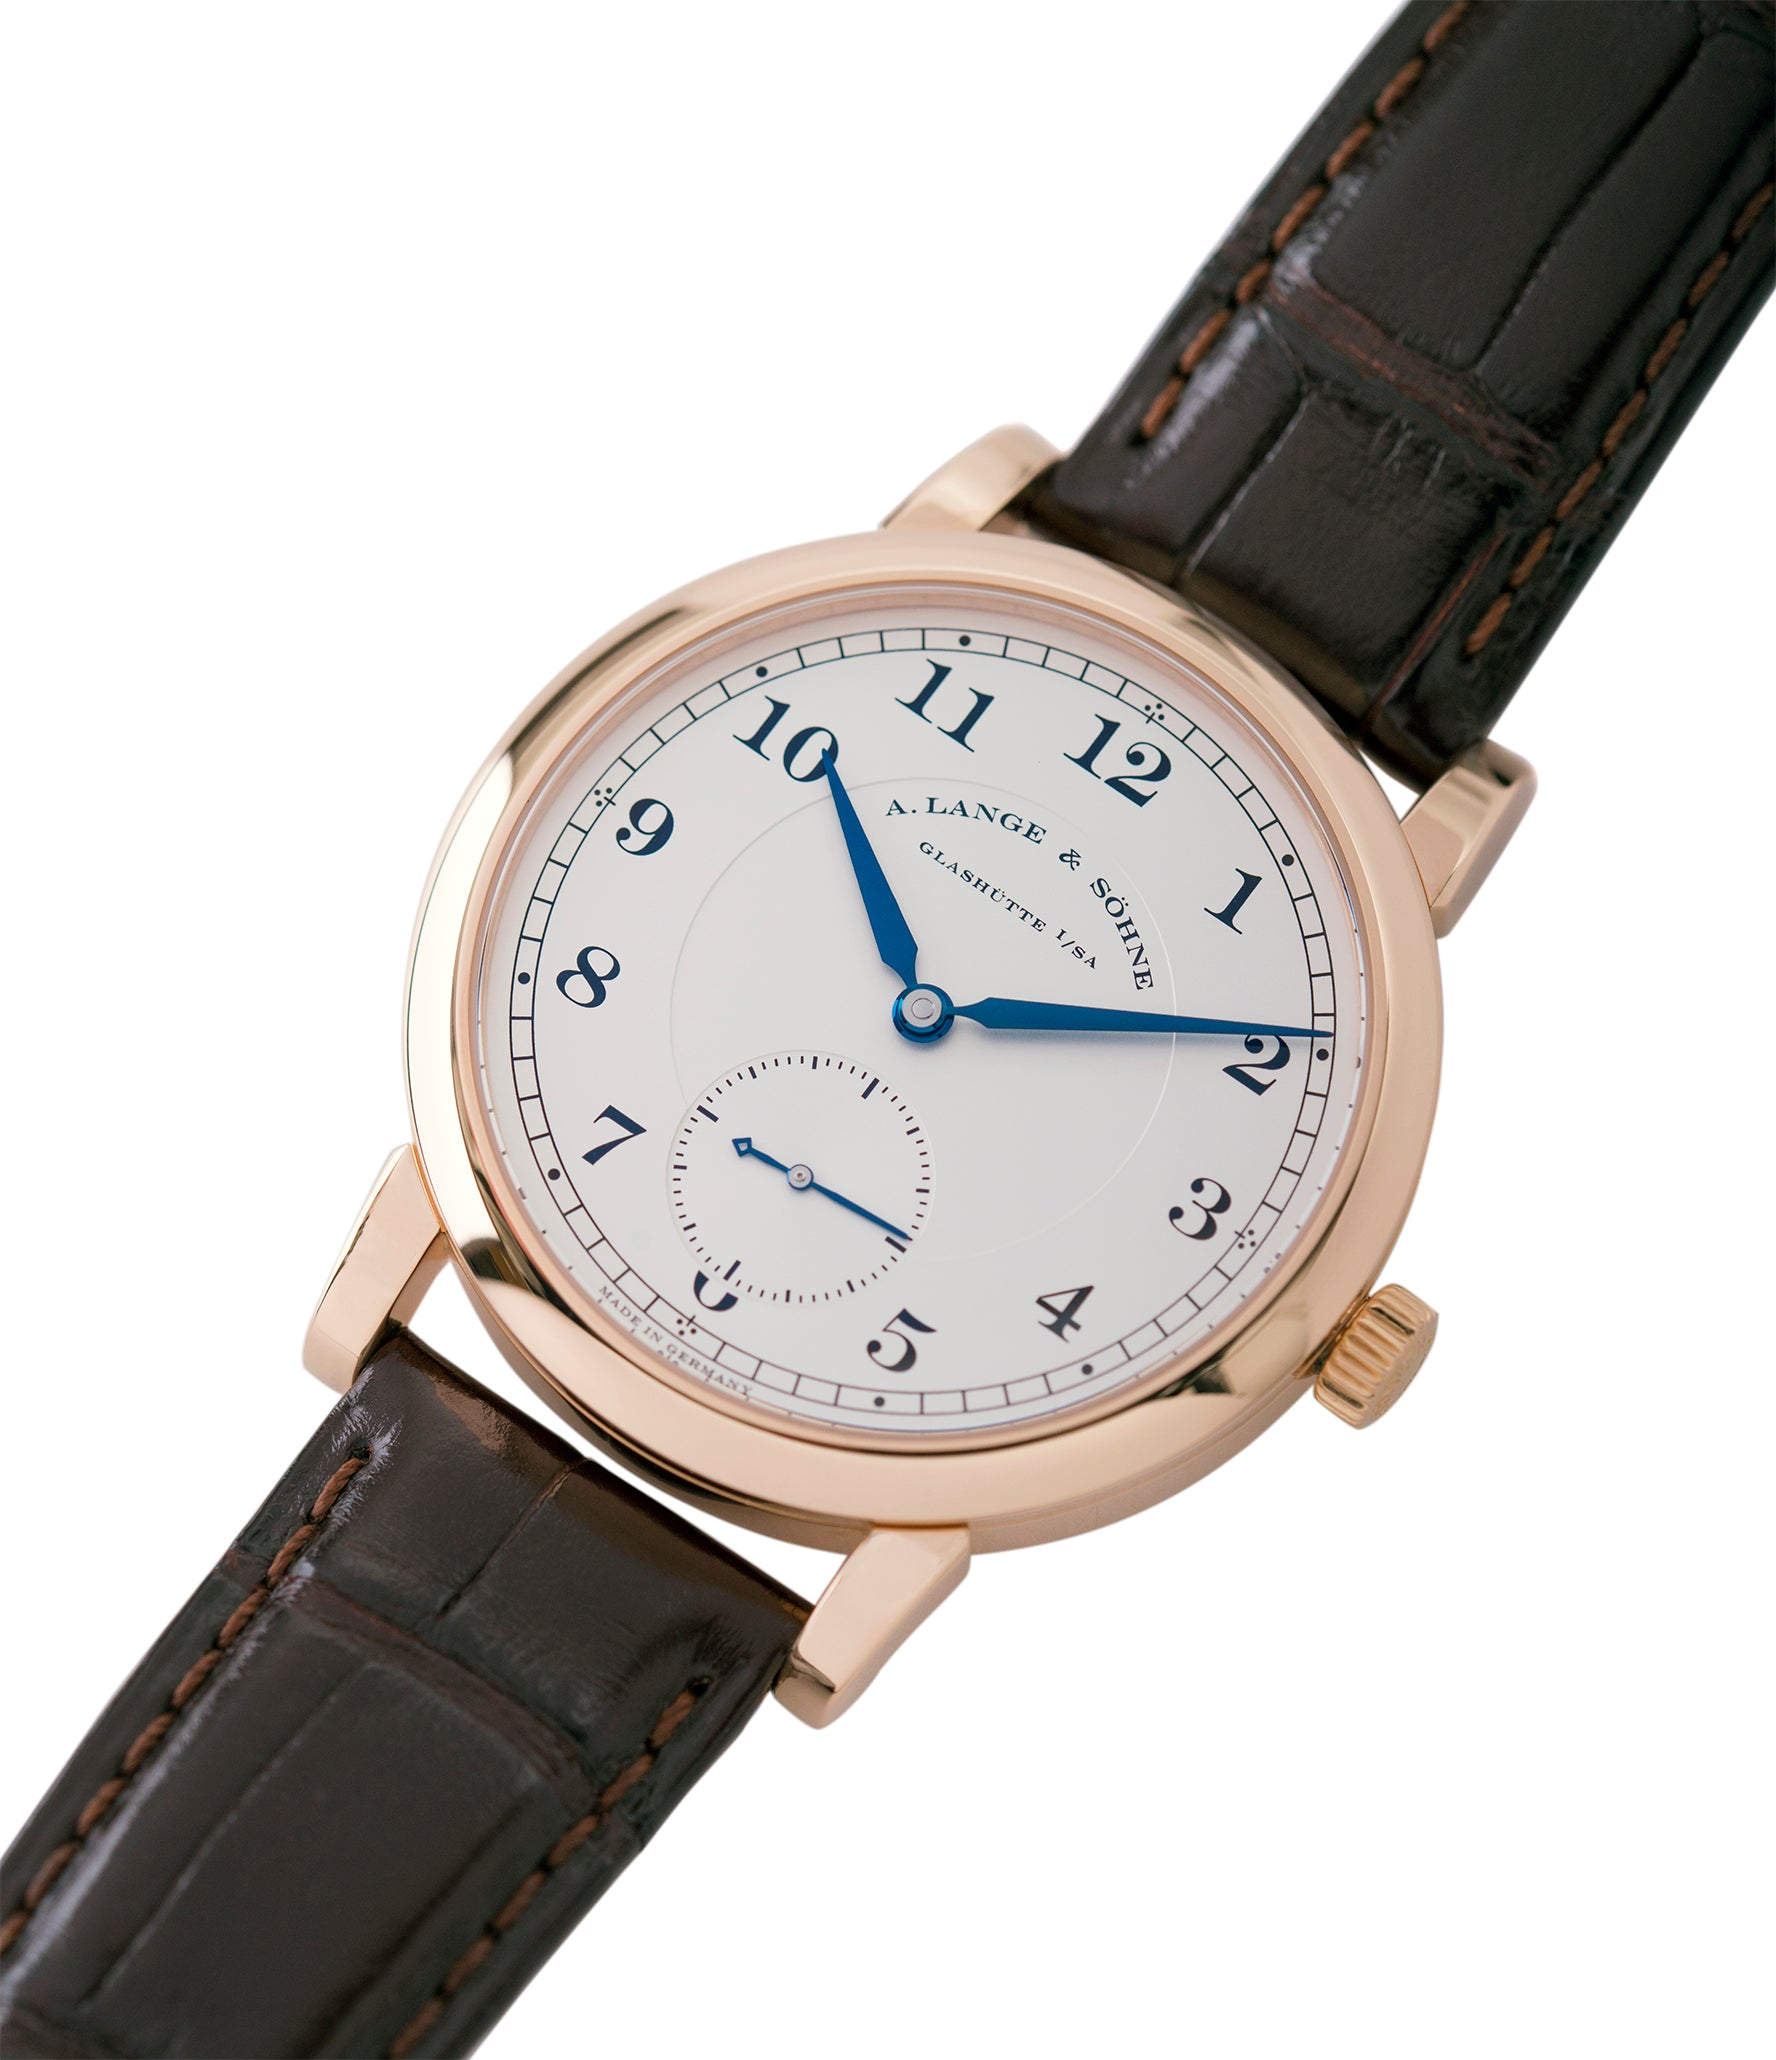 buying A. Lange & Sohne 1815 233.032 rose gold pre-owned dress watch for sale online at A Collected Man London Uk specialist of preowned luxury watches